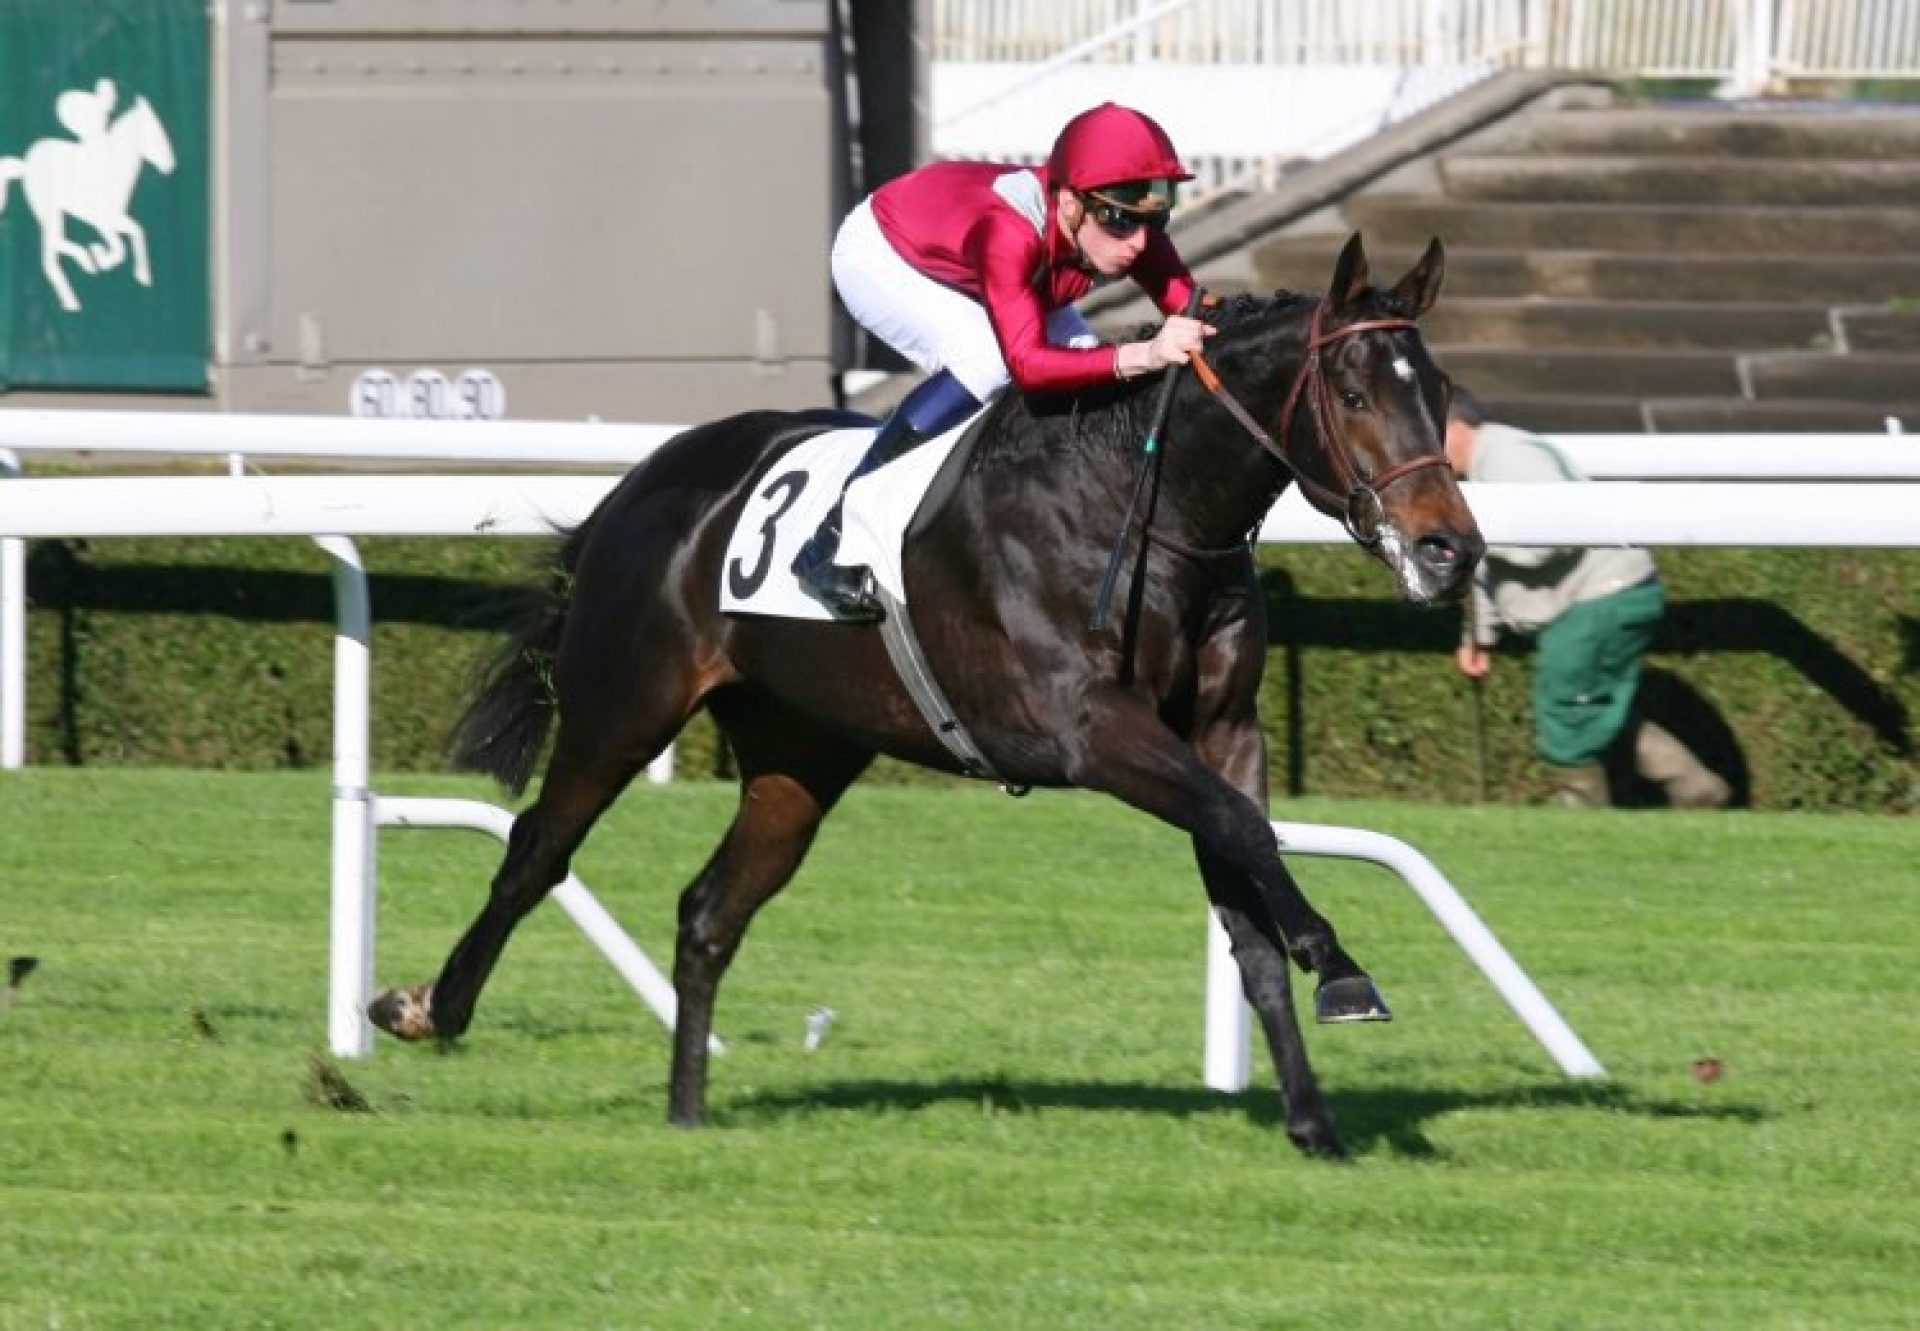 Ocovango winning the Prix Greffulhe at Saint-Cloud